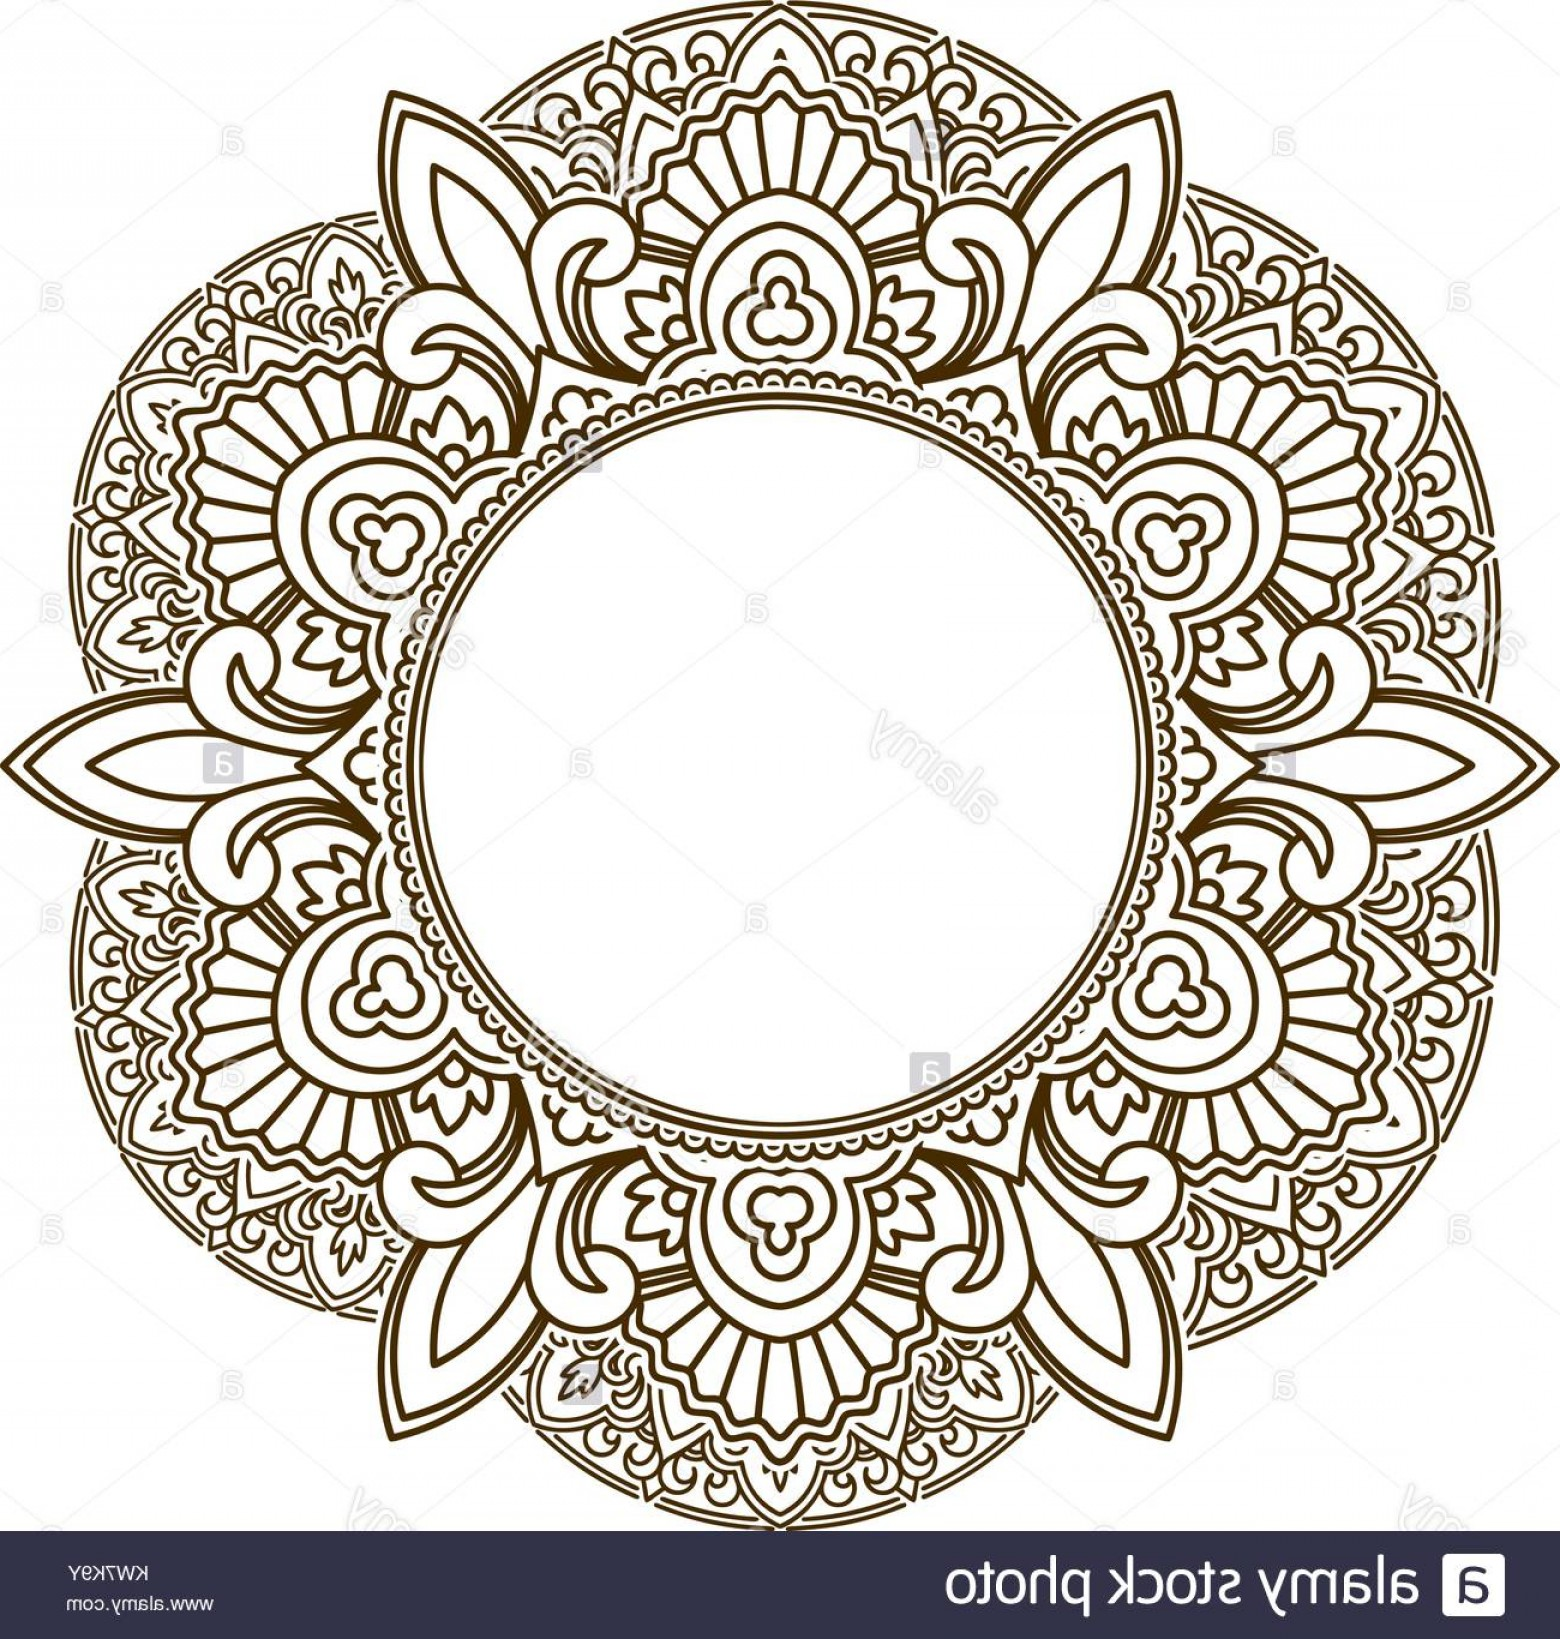 Vector Art Henna: Stock Photo Rich Decorated Henna Frame Pattern With Round Centre Vector Decorative